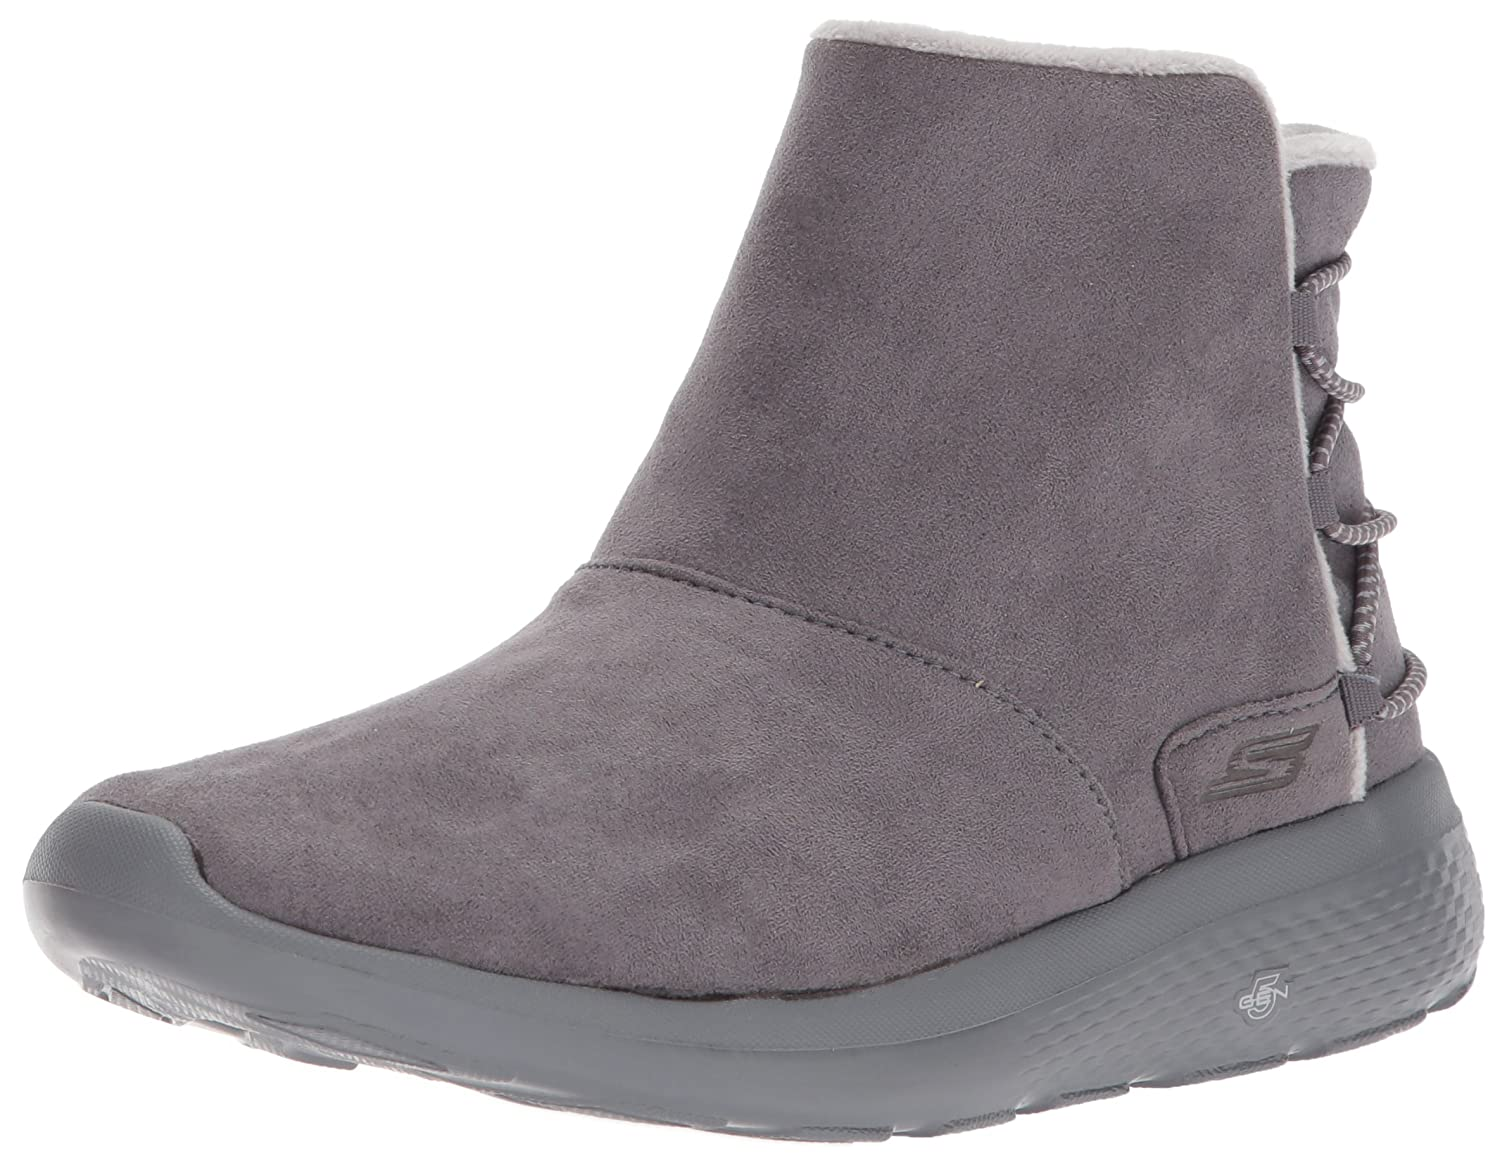 Skechers Damen Stiefeletten On-the-Go City 2 ADAPT Grau  39.5 EU